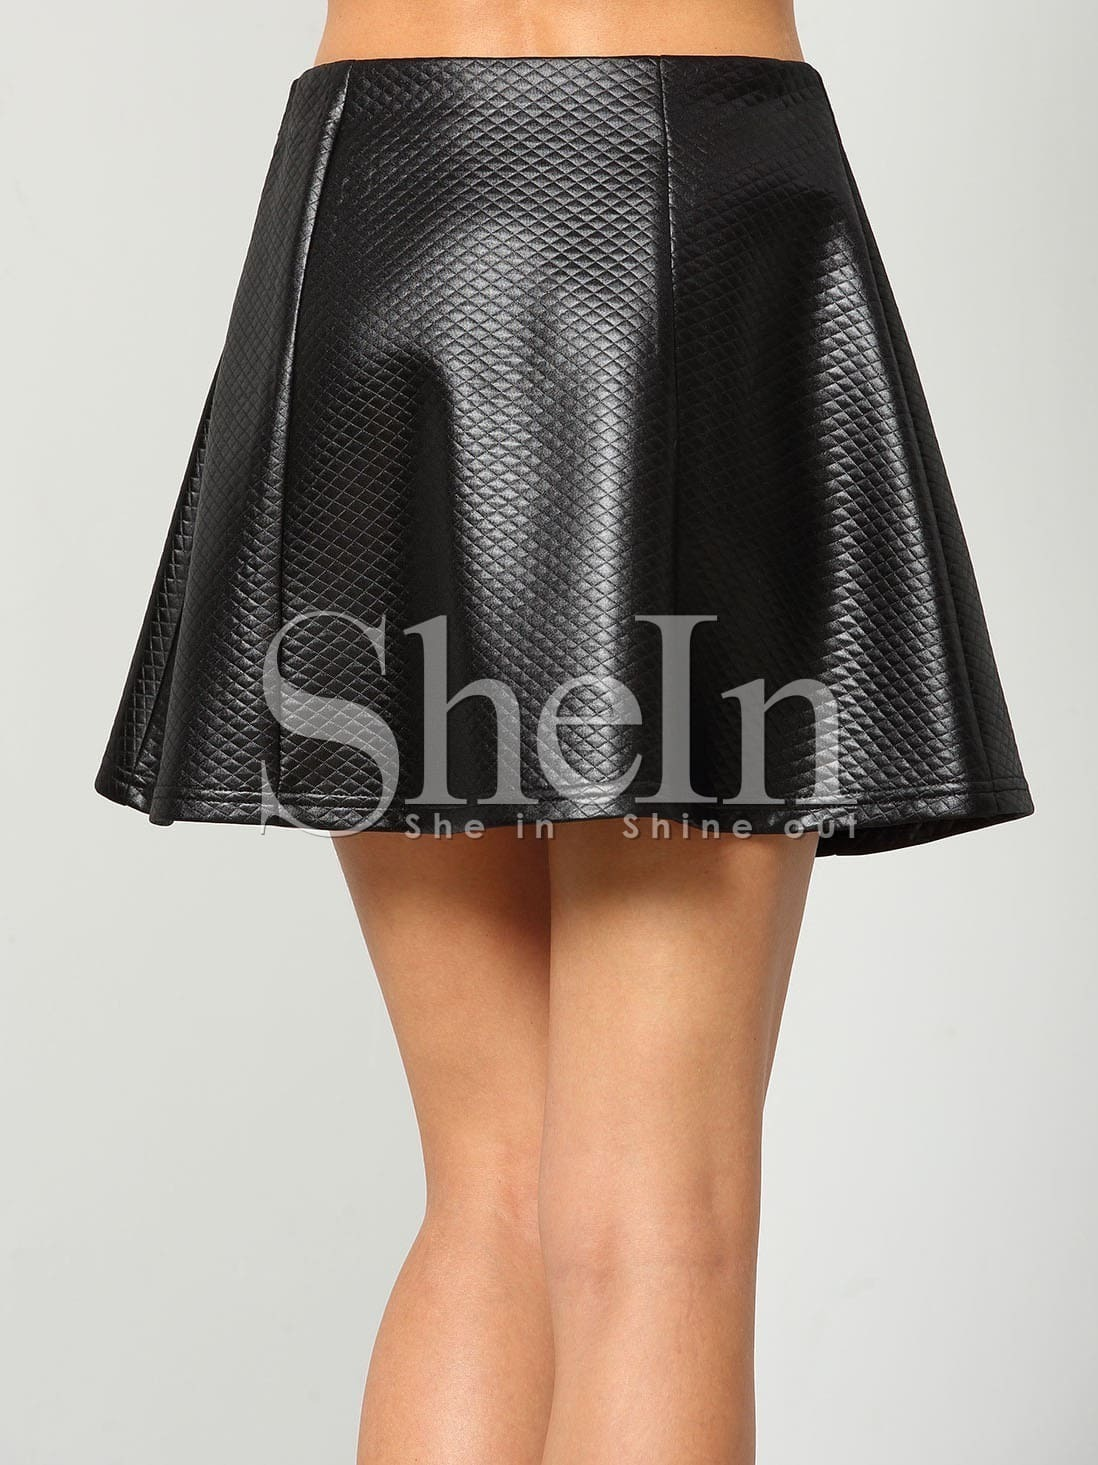 black pu leather a line skirt shein sheinside